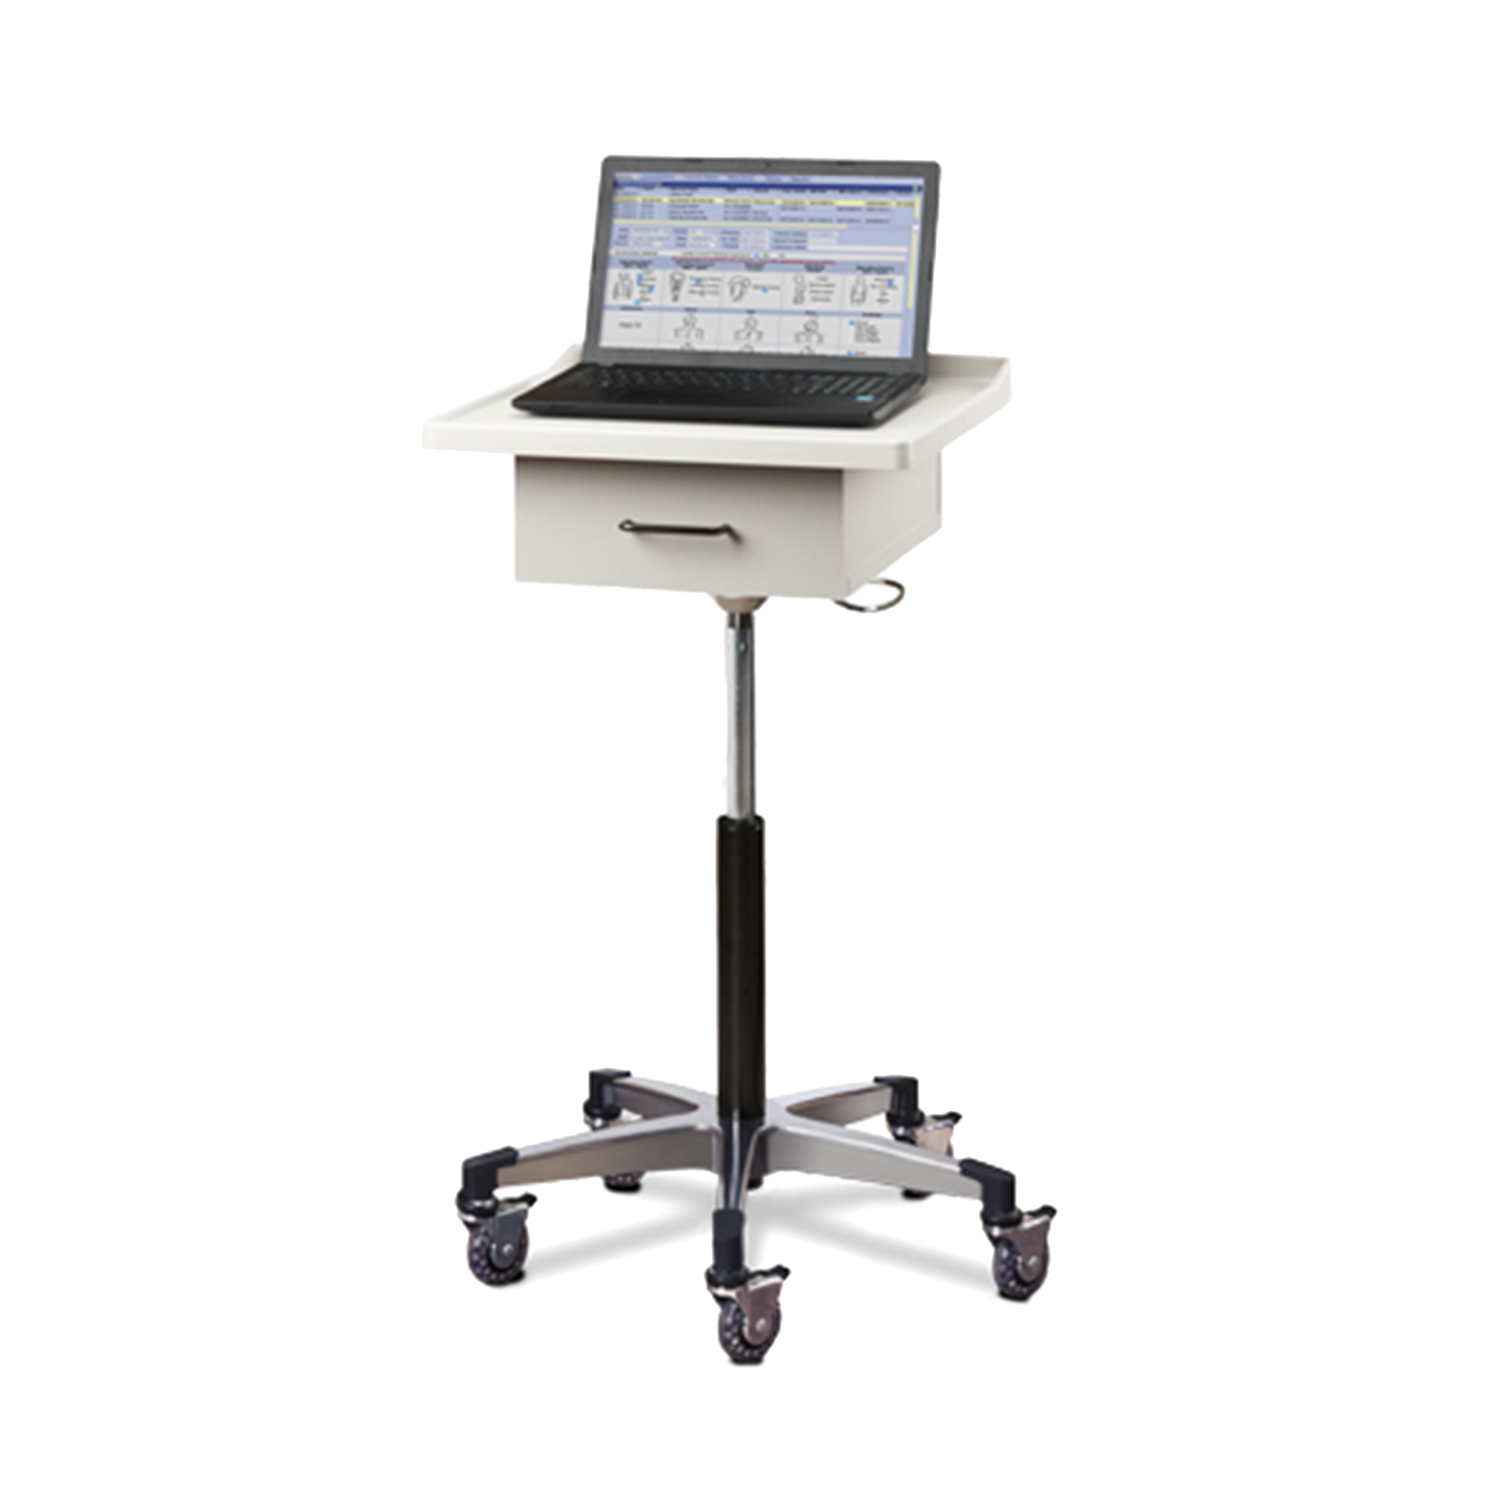 Clinton Large, Tec-Cart™ Mobile Work Station with Drawer